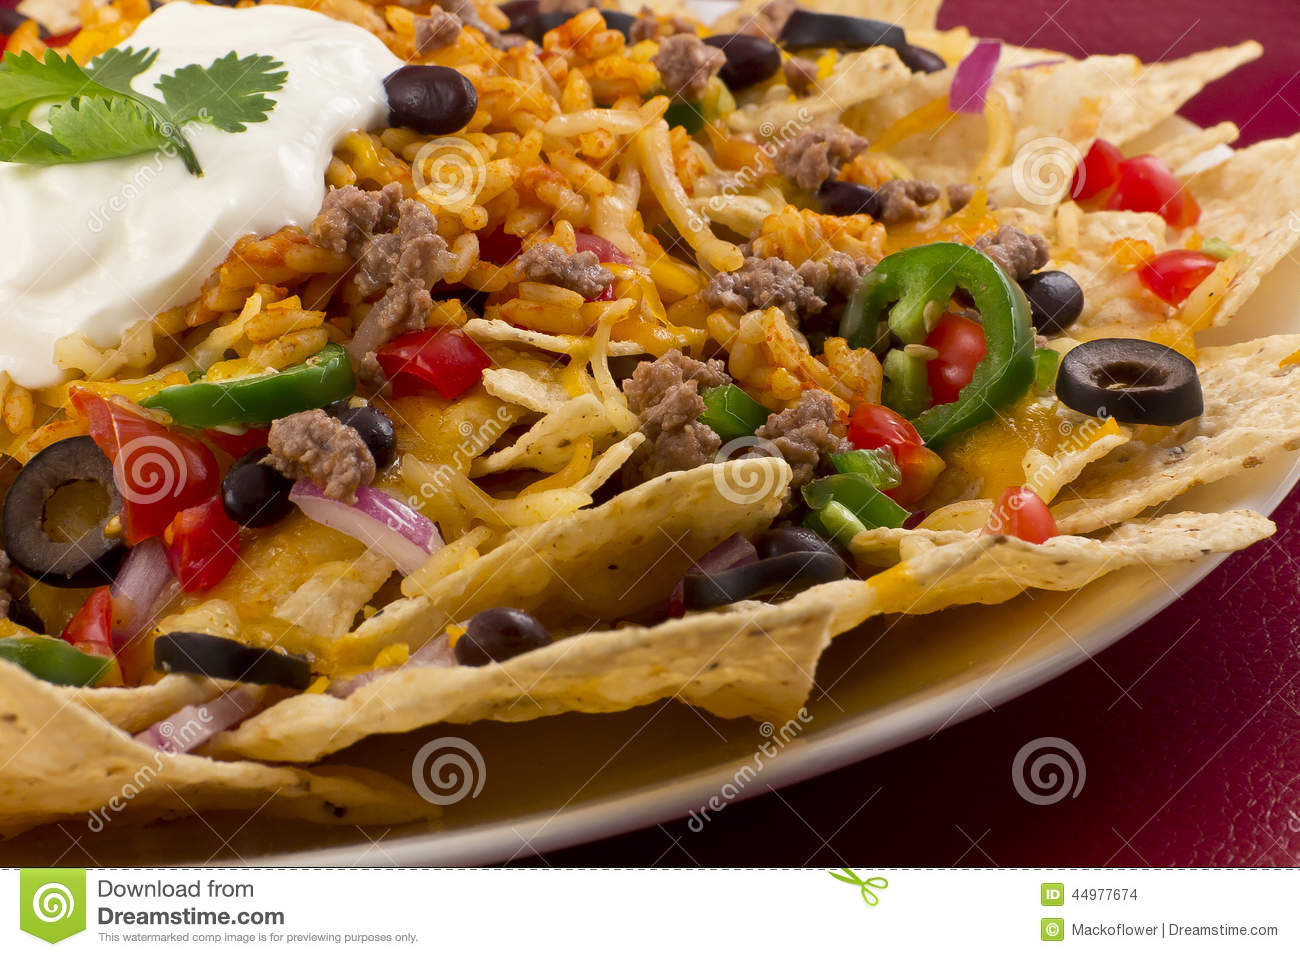 Nachos With Rice And Sour Cream Stock Photo - Image: 44977674